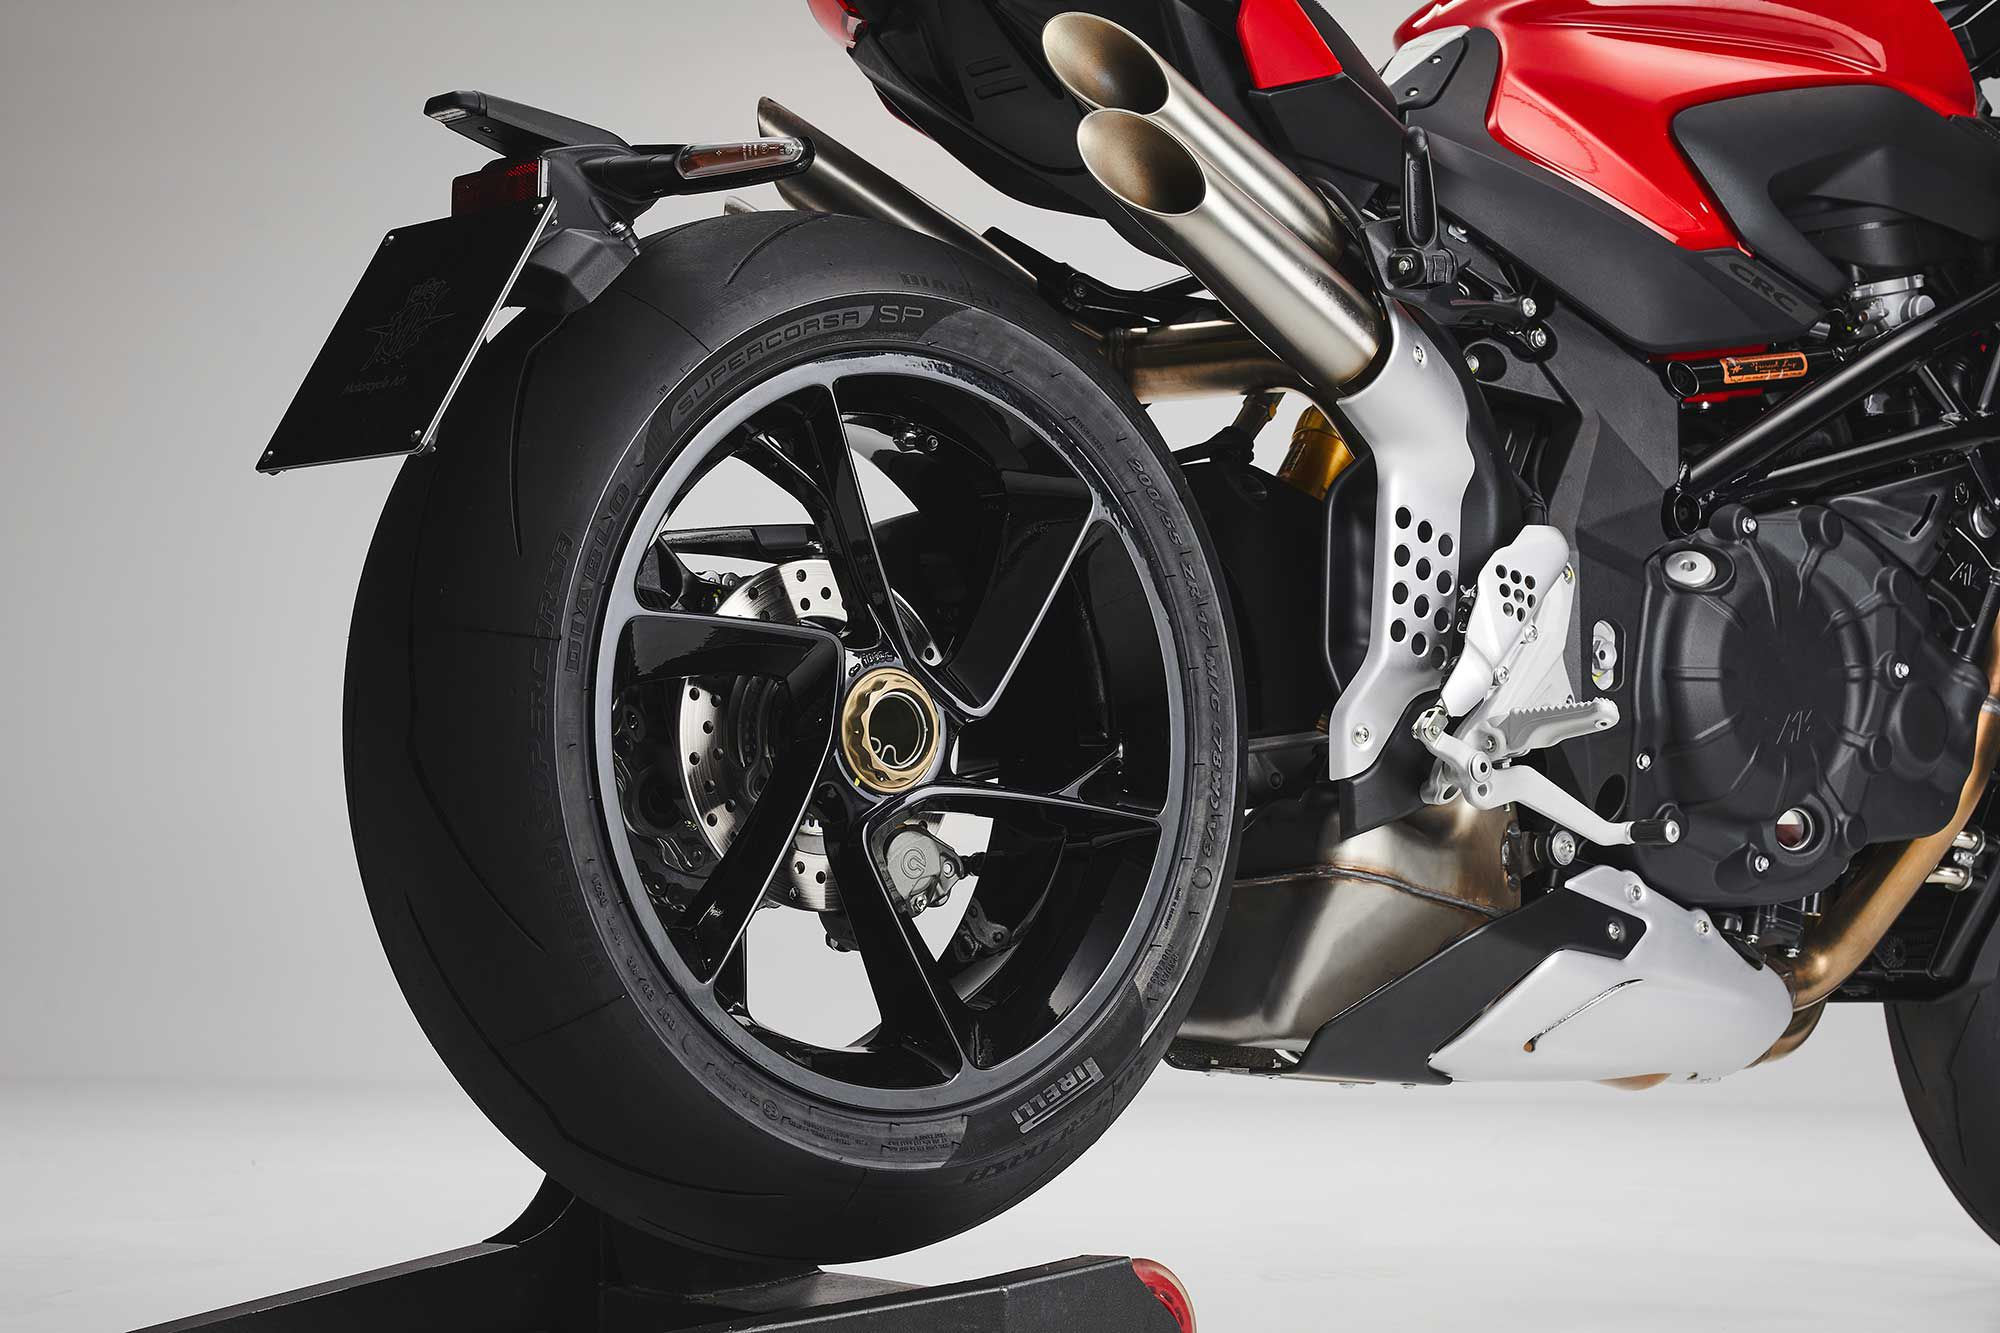 The RS has the same single-sided swingarm as the RR.